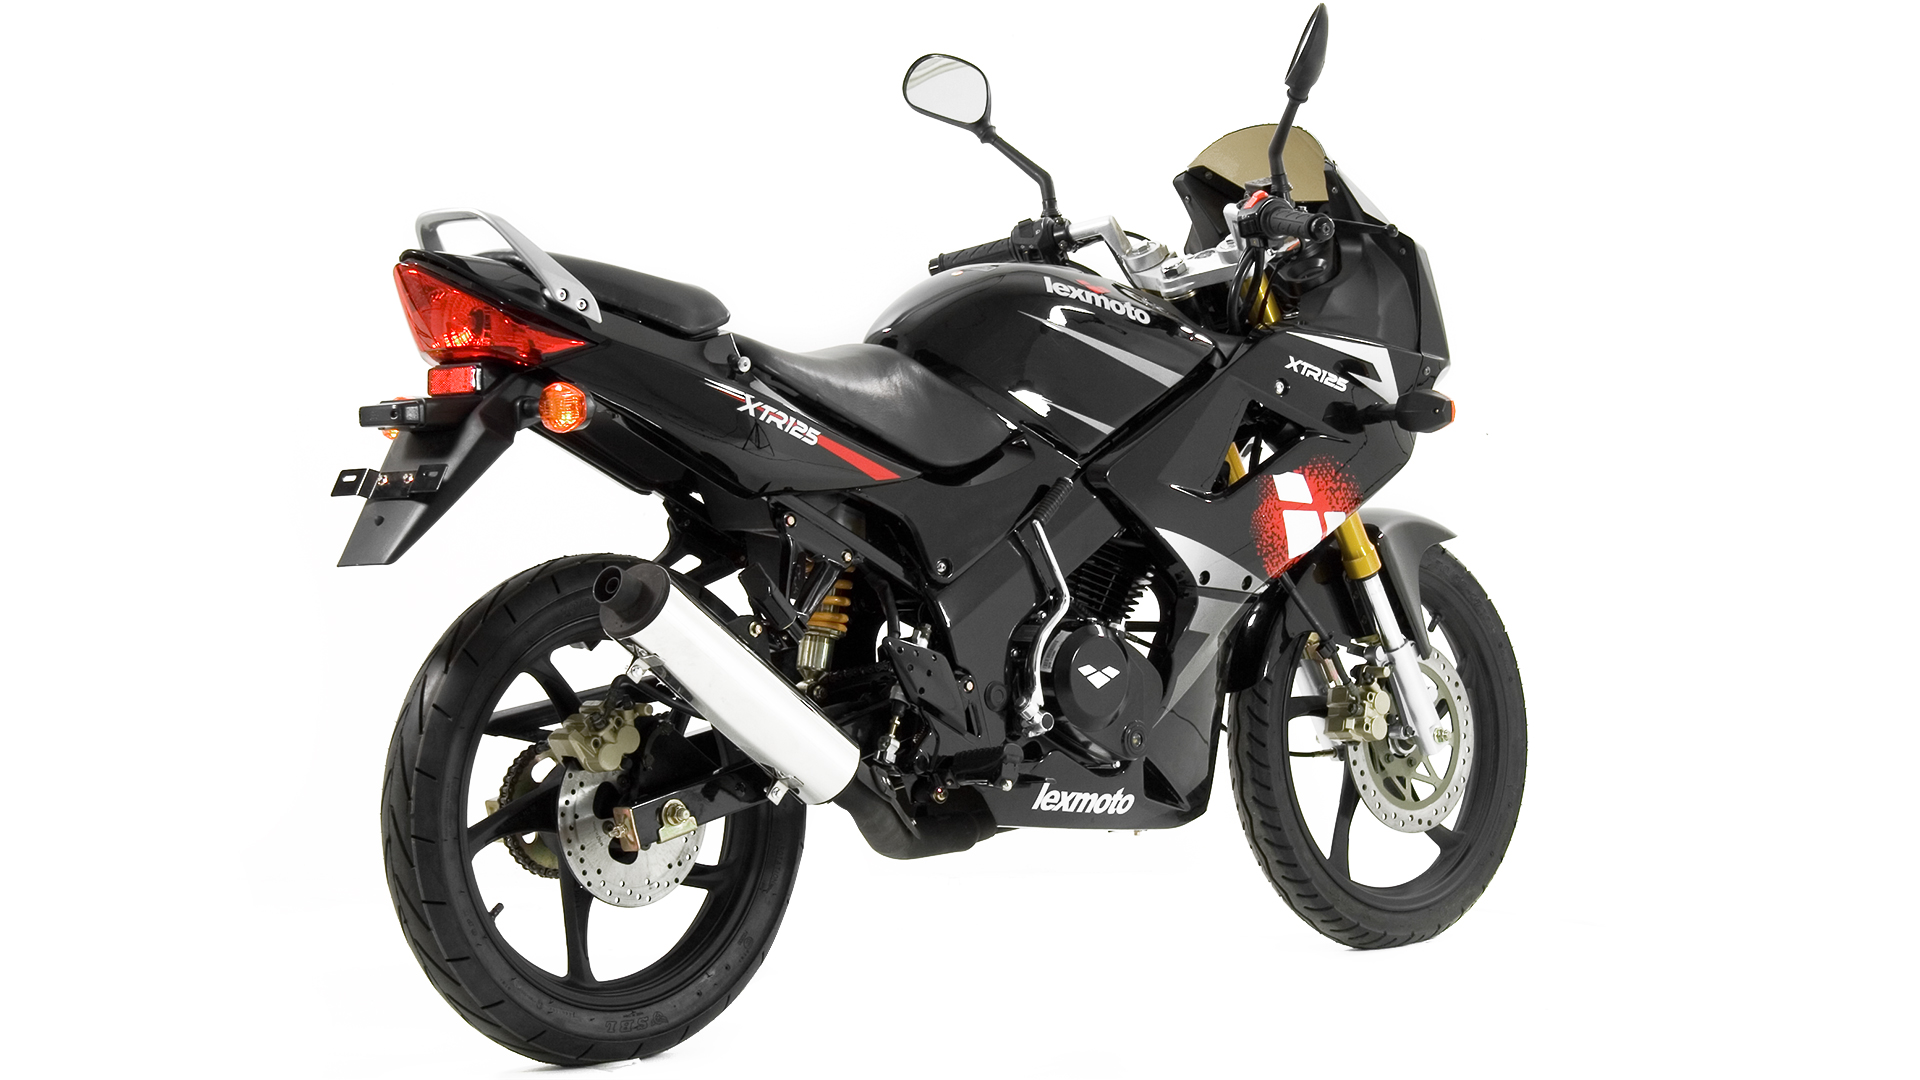 also Bimota Yb likewise D likewise Mz Baghira Black Panther furthermore Universal Modified Motorcycle Motorbike Atv Scooter Moped Igniter Ignition Racing Digital Adjustable Dc Cdi Usb Gy Lifan Cg Qj. on cdi ignition motorcycle